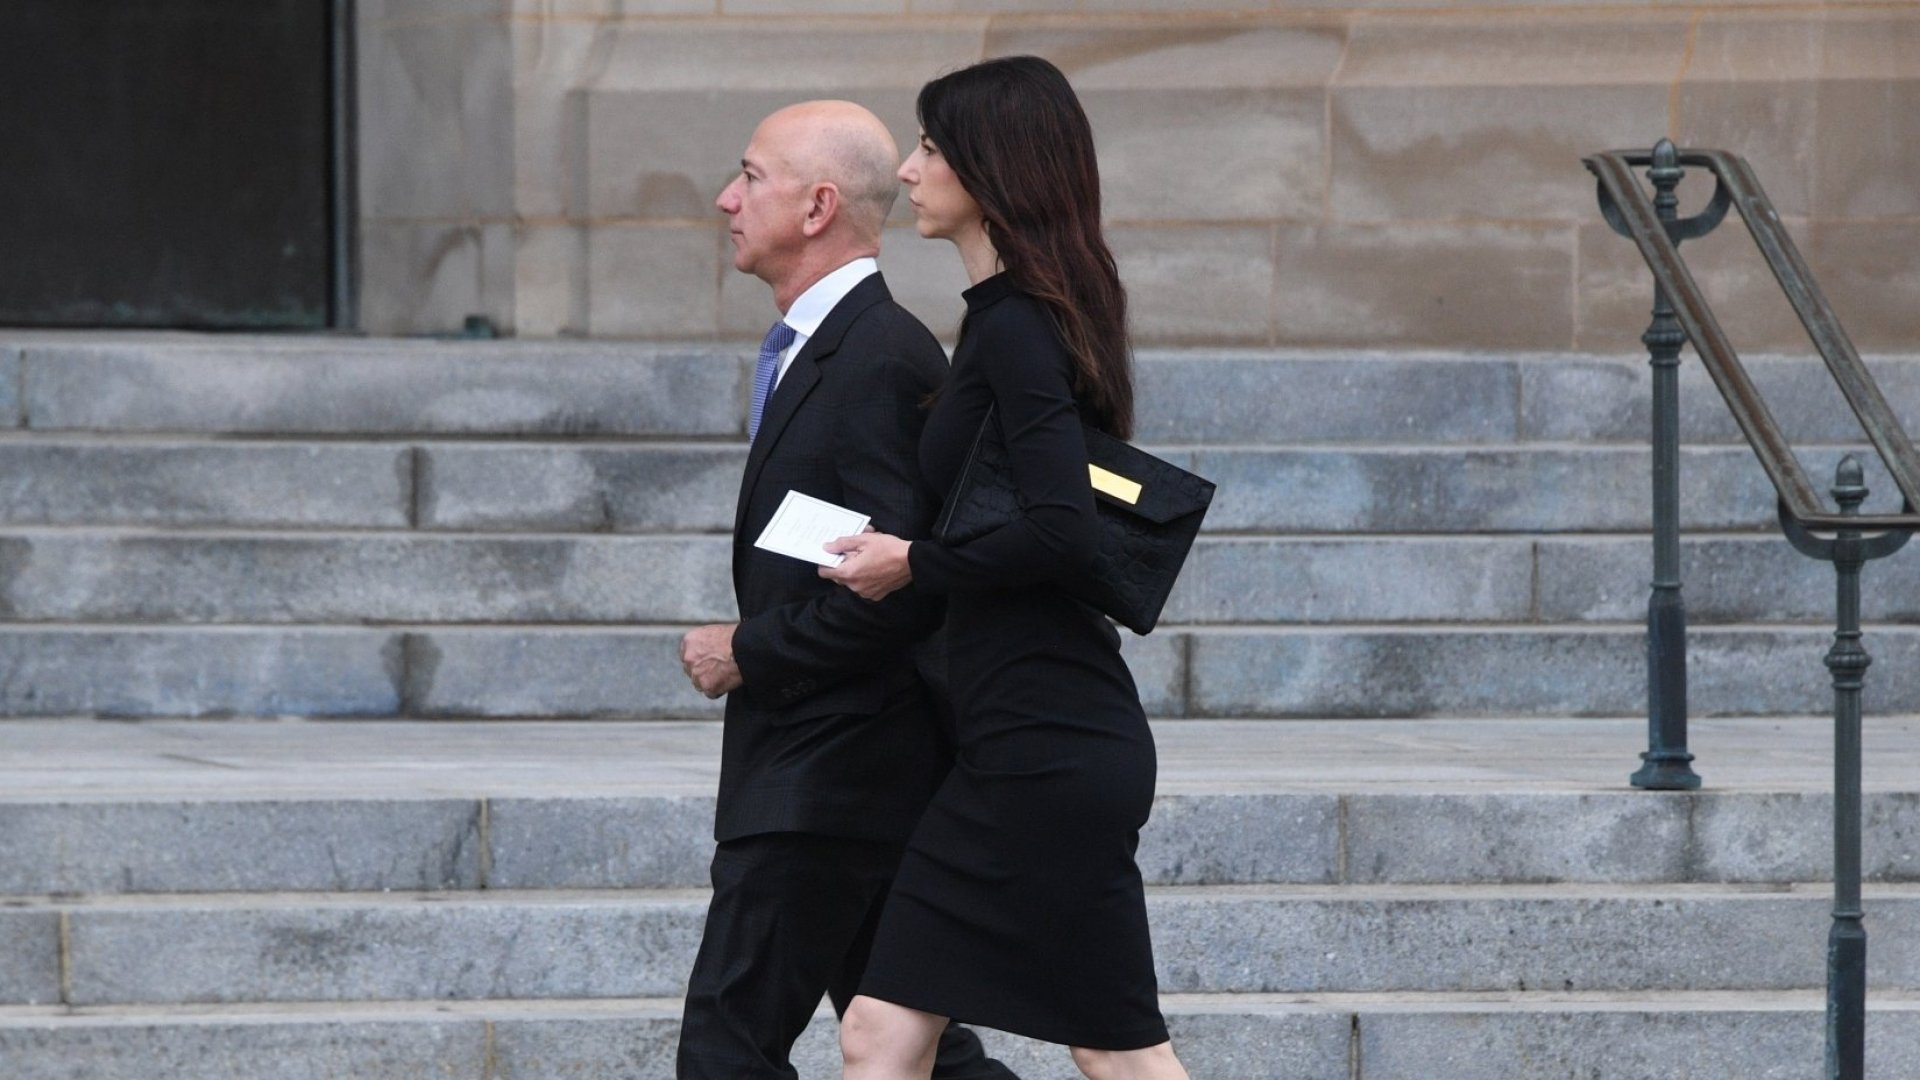 These Risk Factors May Have Contributed to Jeff Bezos' Divorce